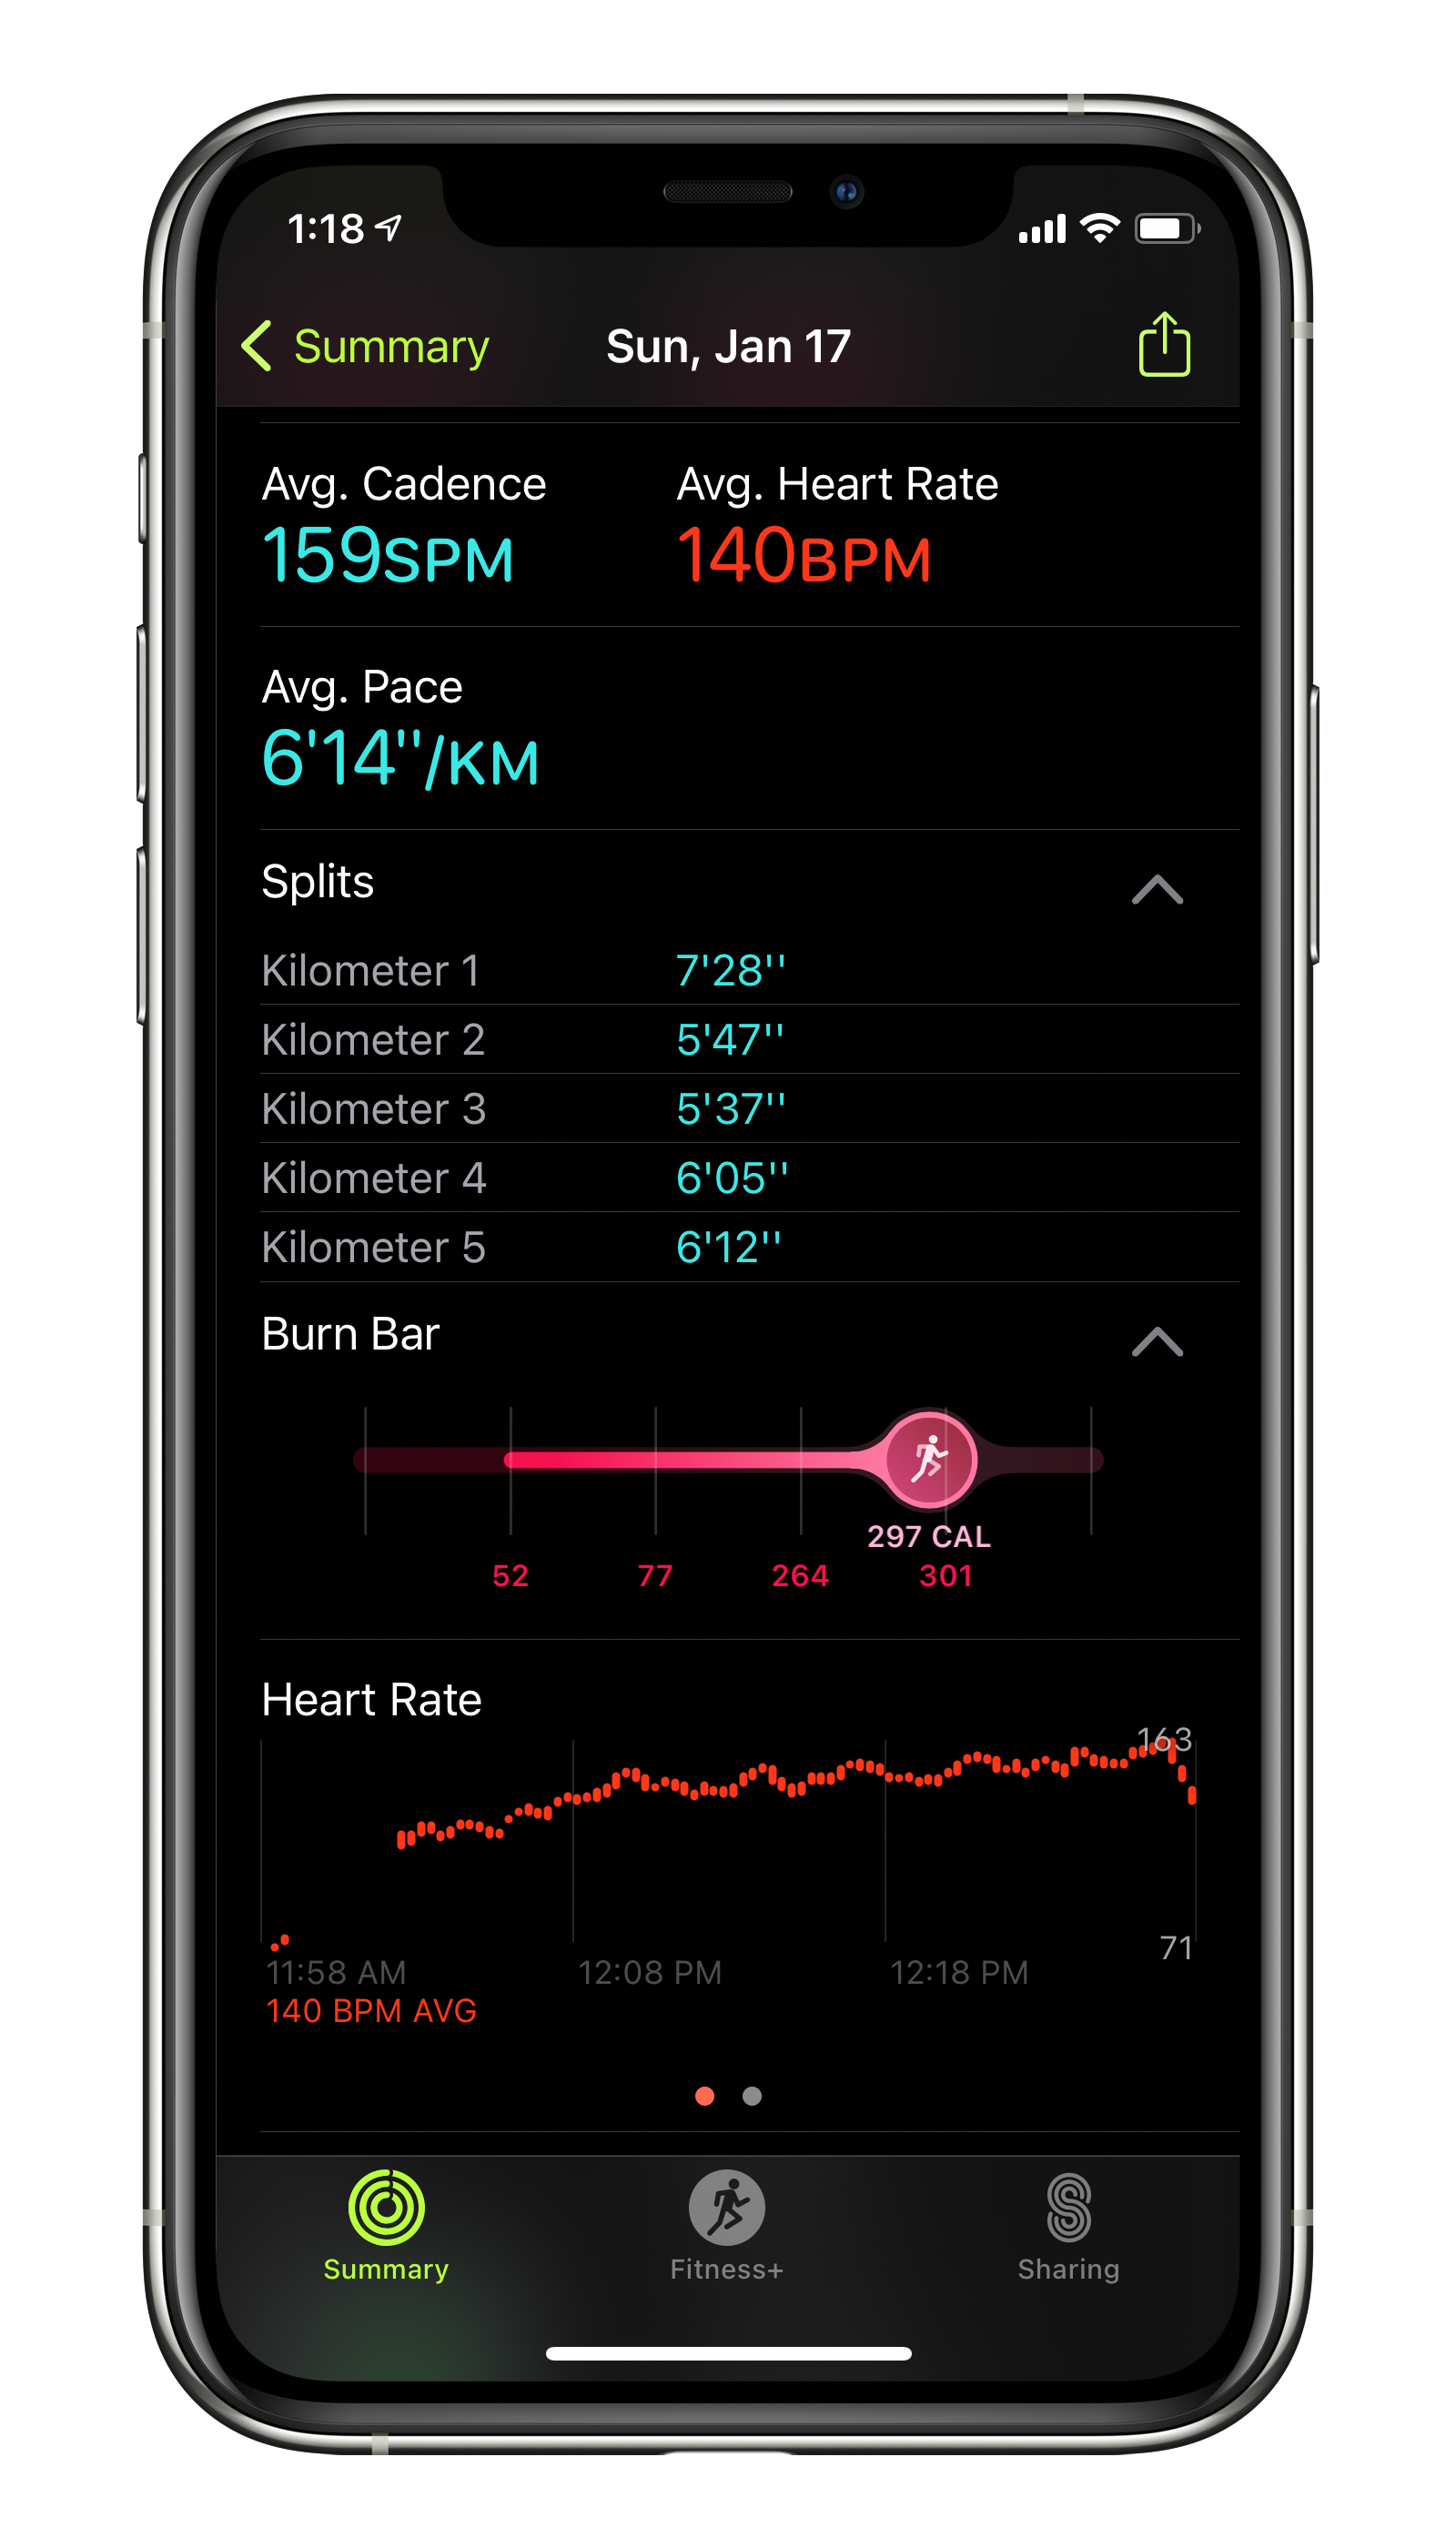 A few minutes of lost heartbeat readings